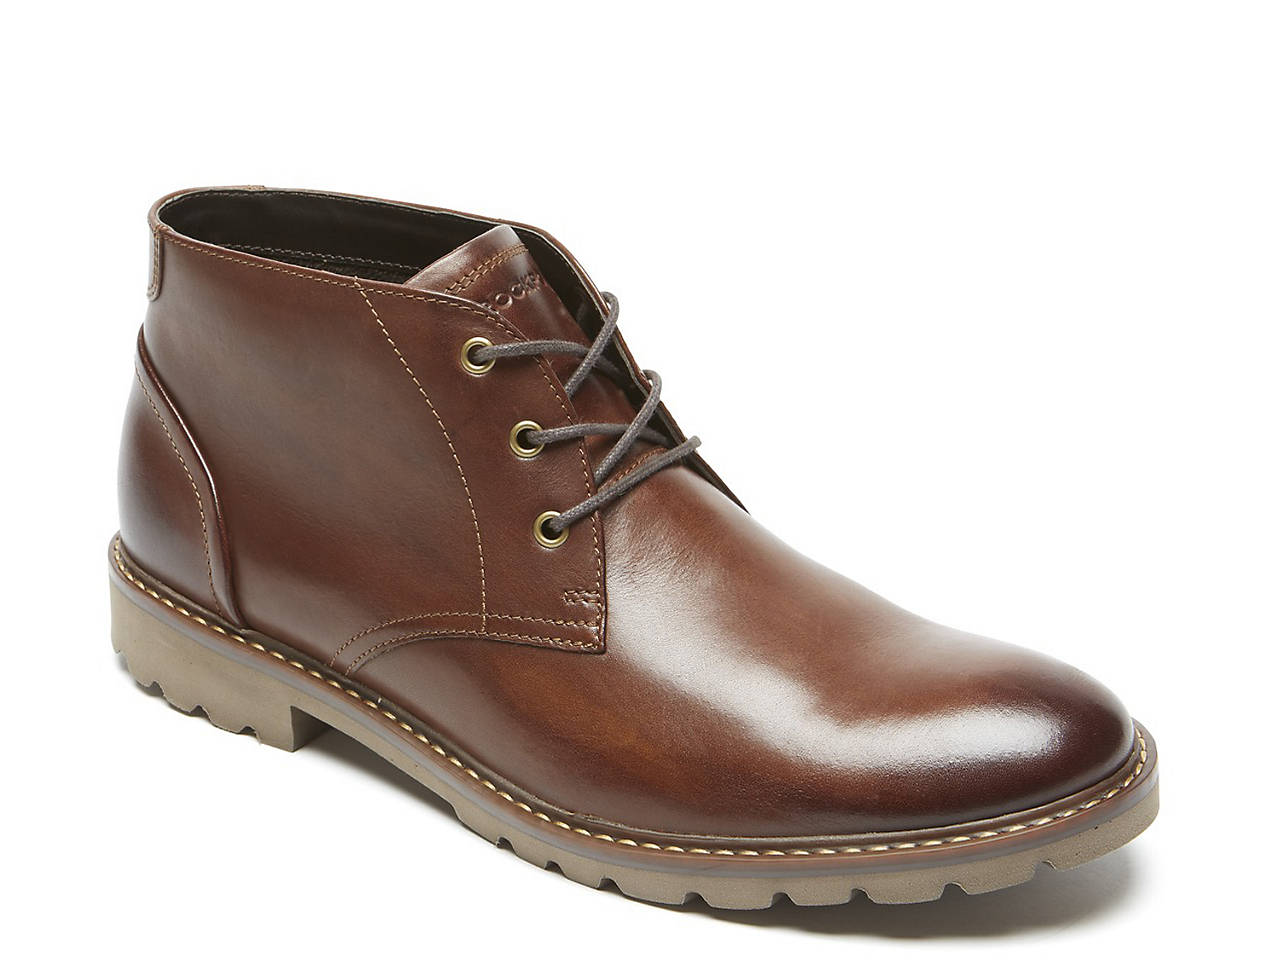 9e24868c9d52 Rockport Sharp   Ready Chukka Boot Men s Shoes